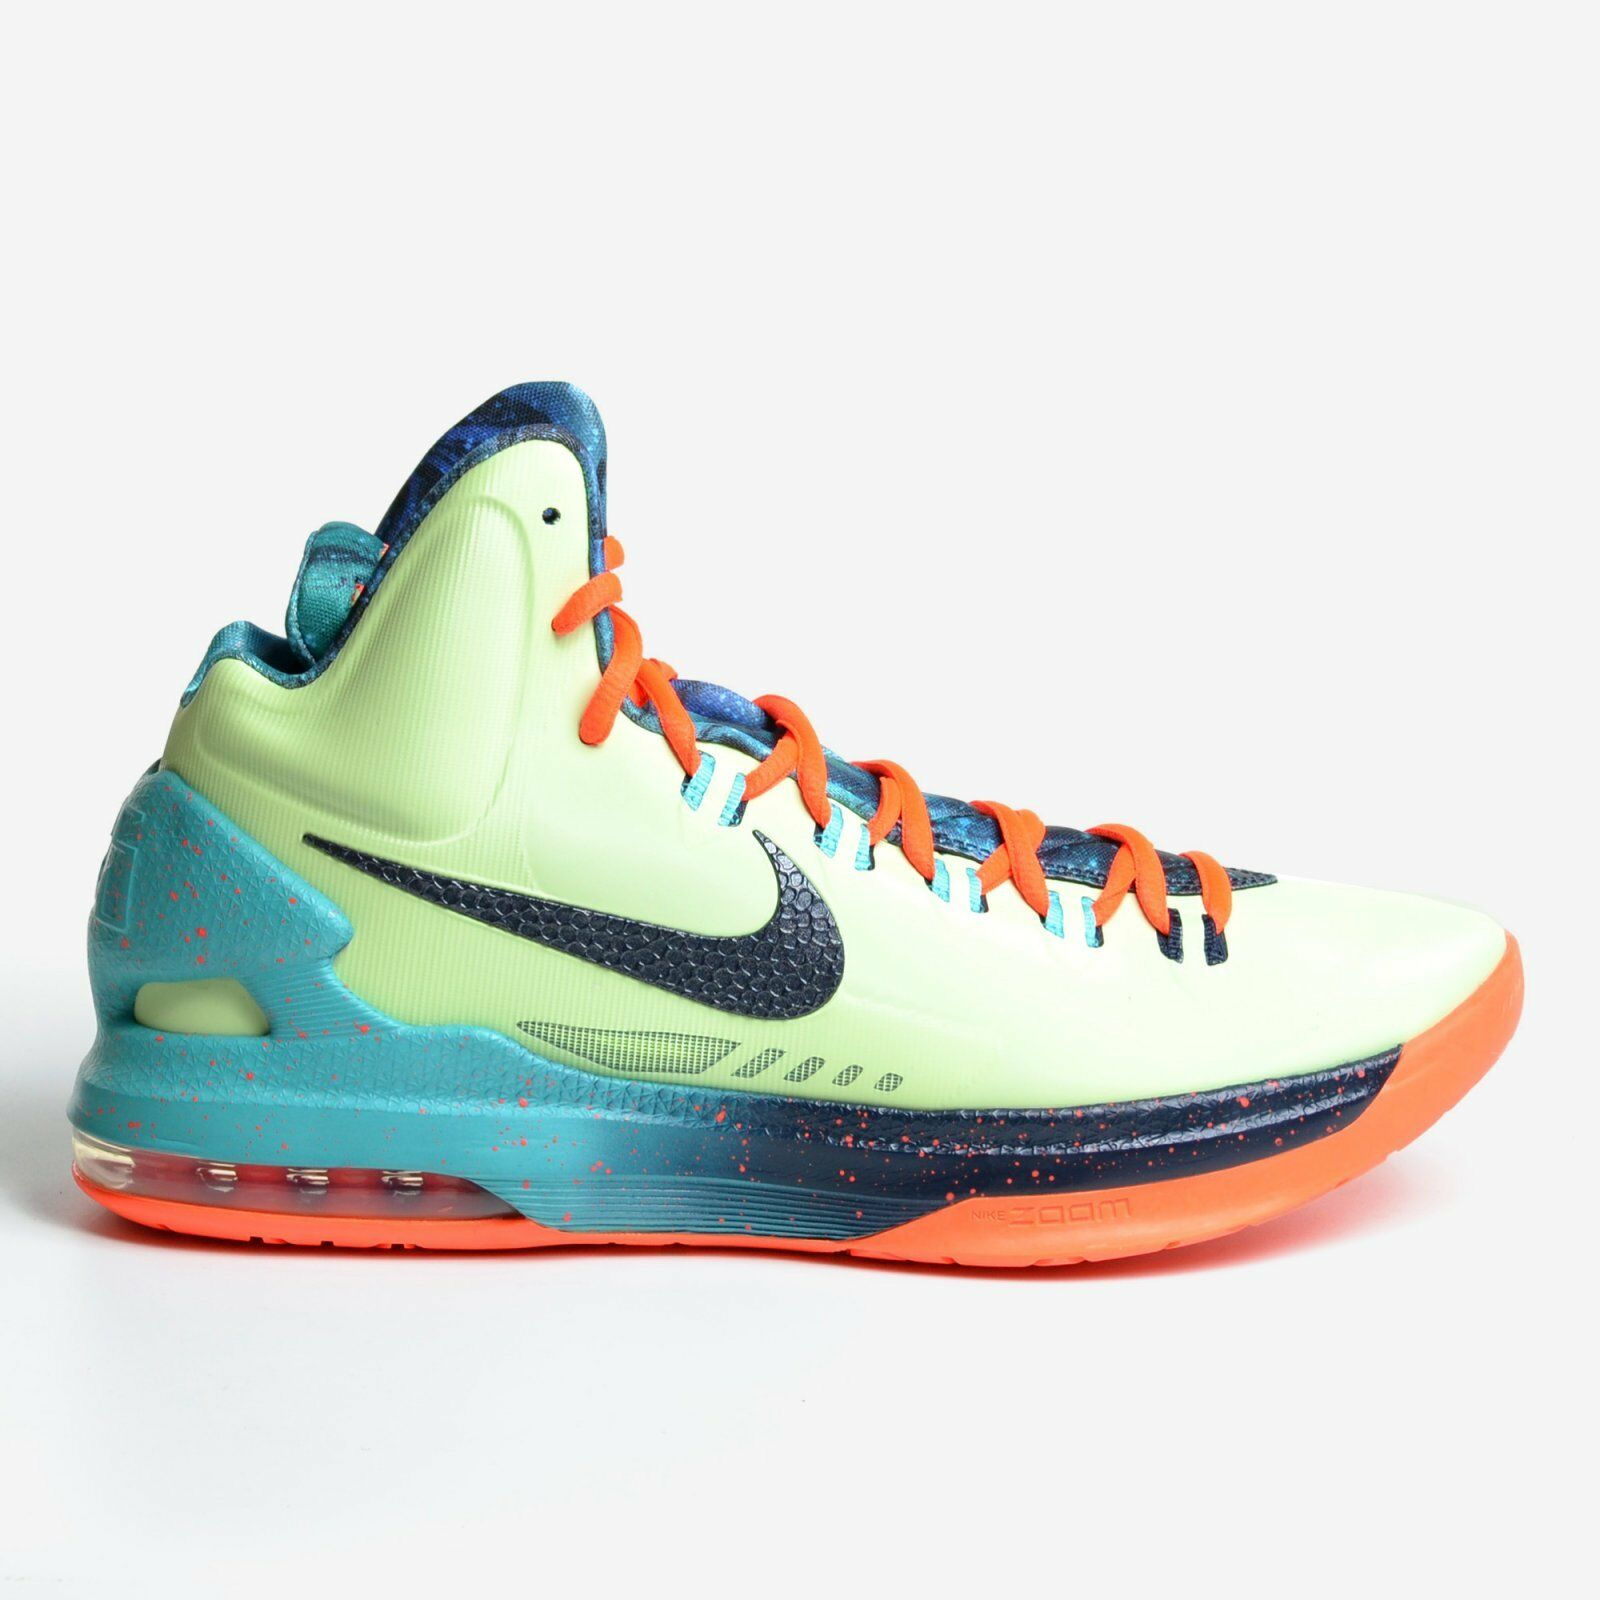 Nike Kd 5 V Allstar Area 72 Lime All 2018 Asg All Lime Star Game Kevin Durant 583111-300 0a843a